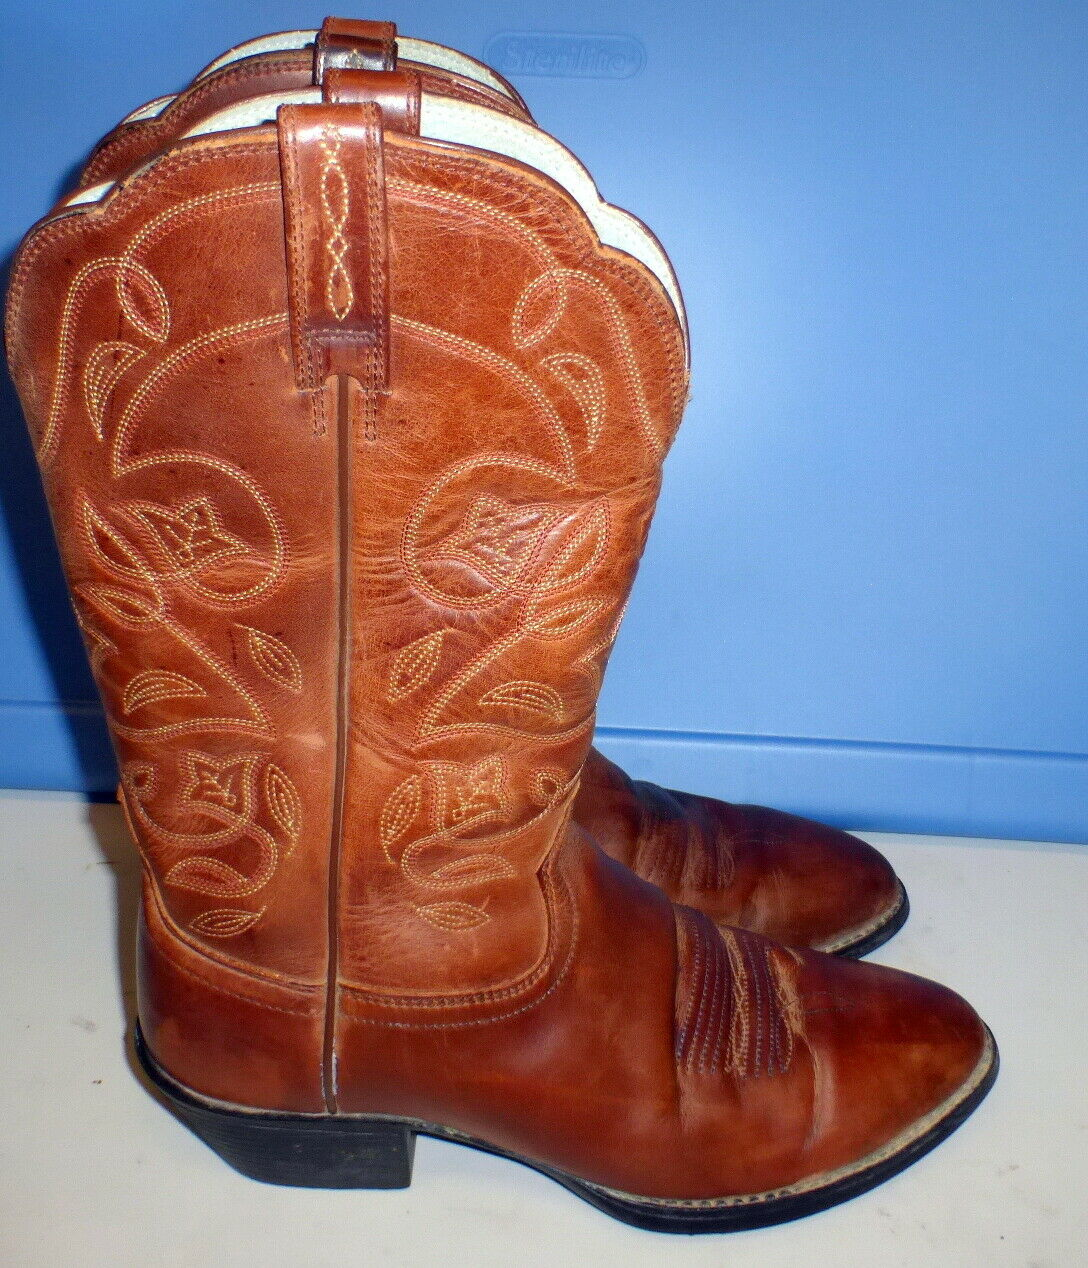 WOMENS ARIAT 10001015 HERITAGE R TOE BROWN WESTERN COWBOY STYLE BOOTS 7.5B